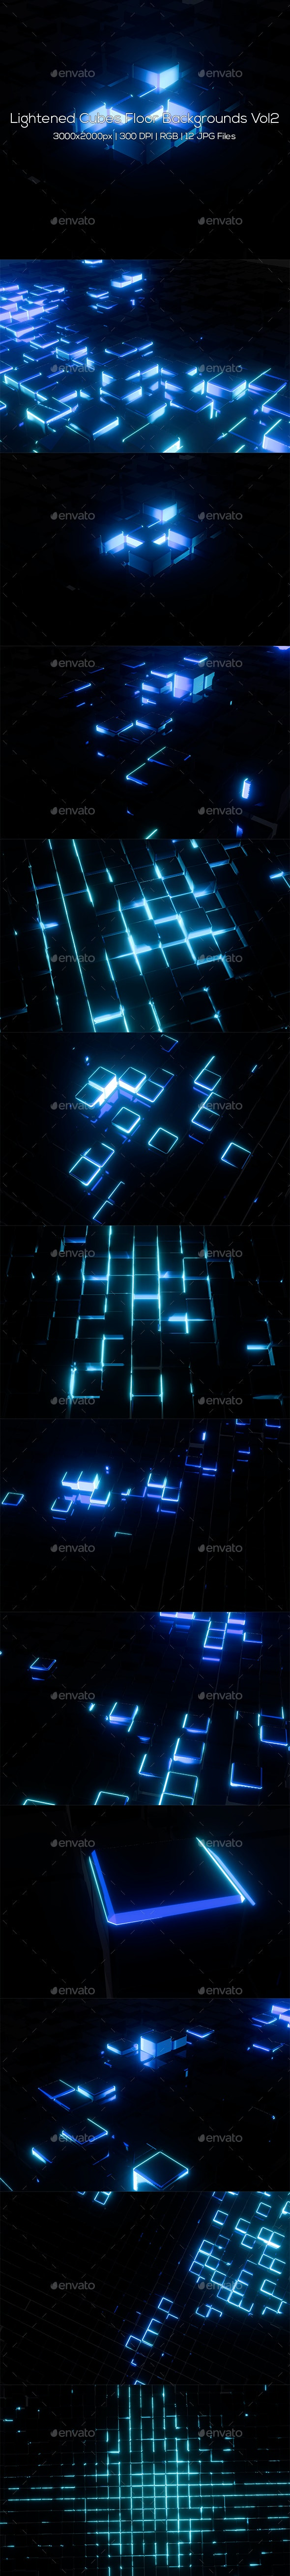 Lightened Cubes Floor Backgrounds Vol2 - Abstract Backgrounds